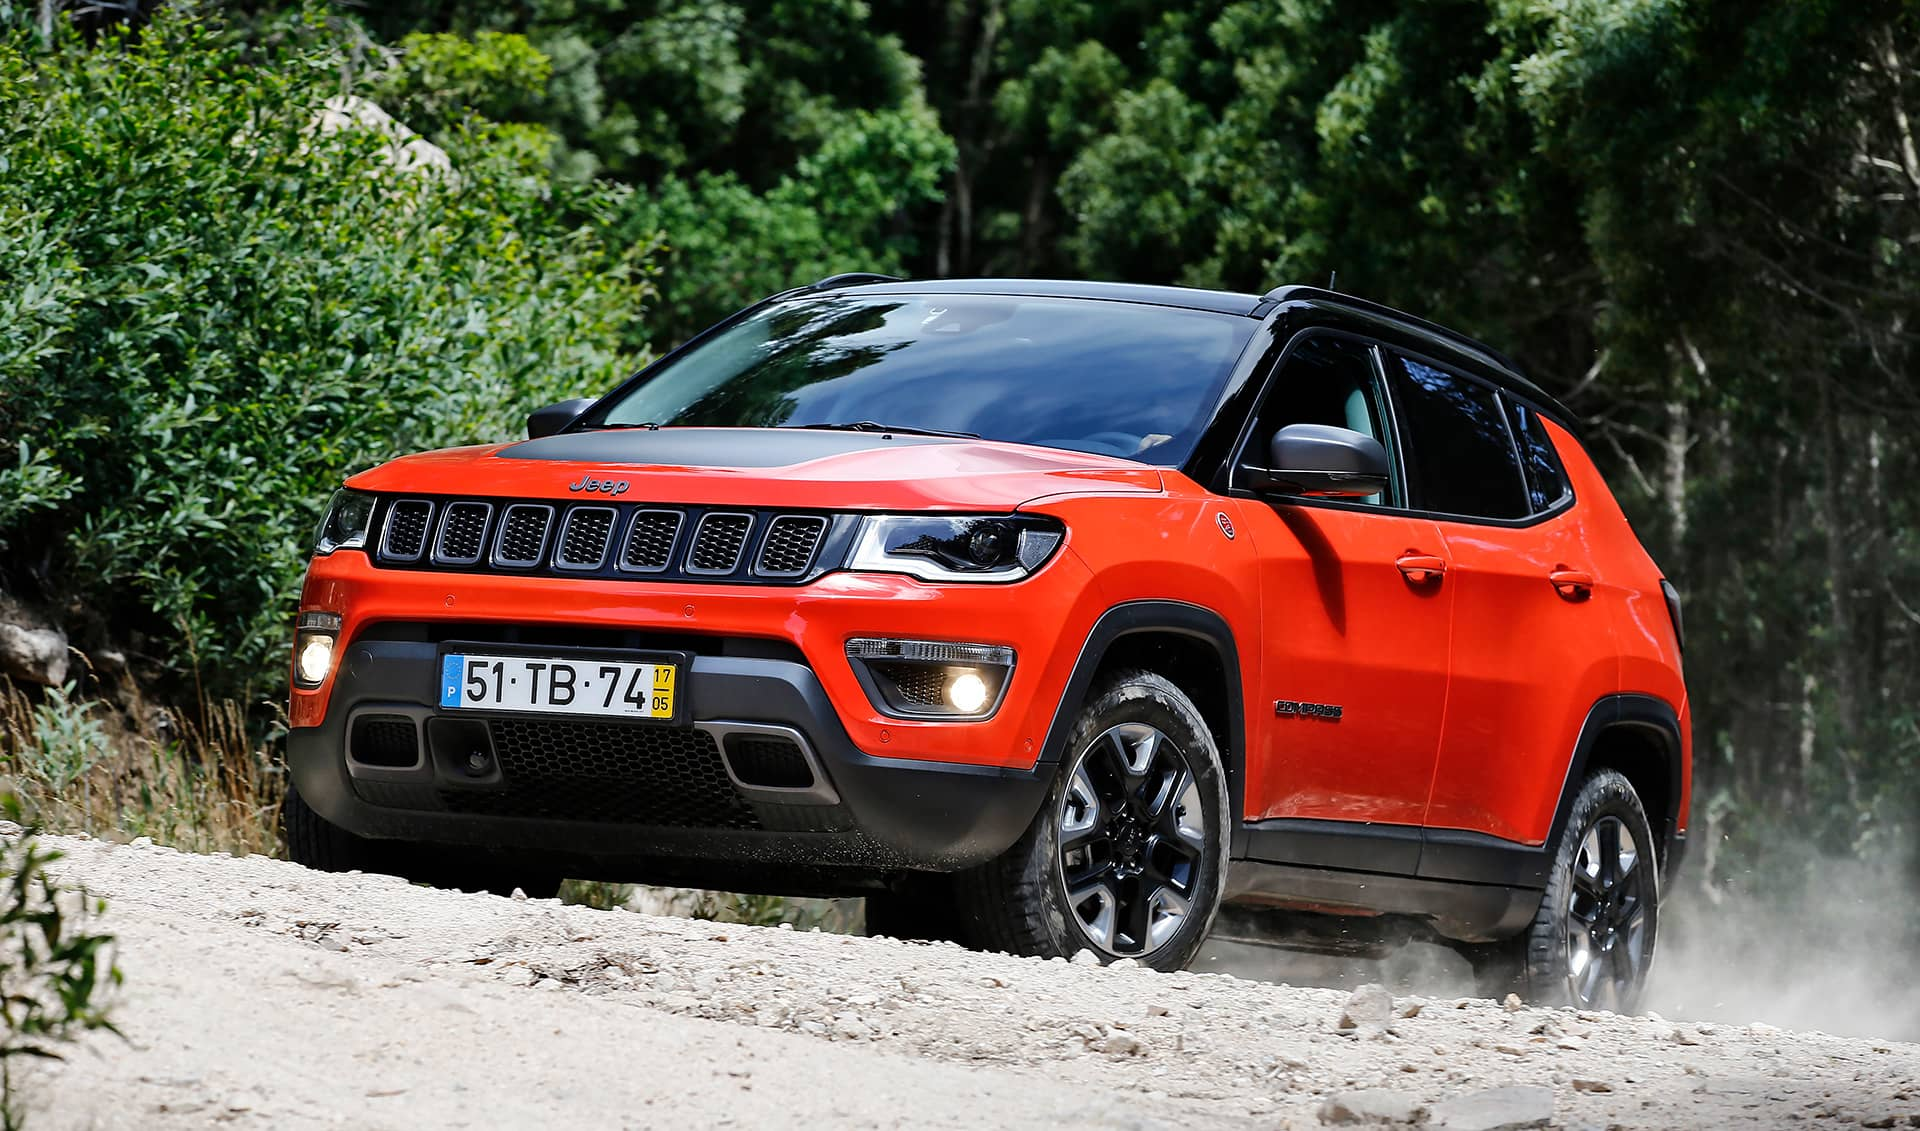 2020 Jeep Trail Hawk Price, Design and Review